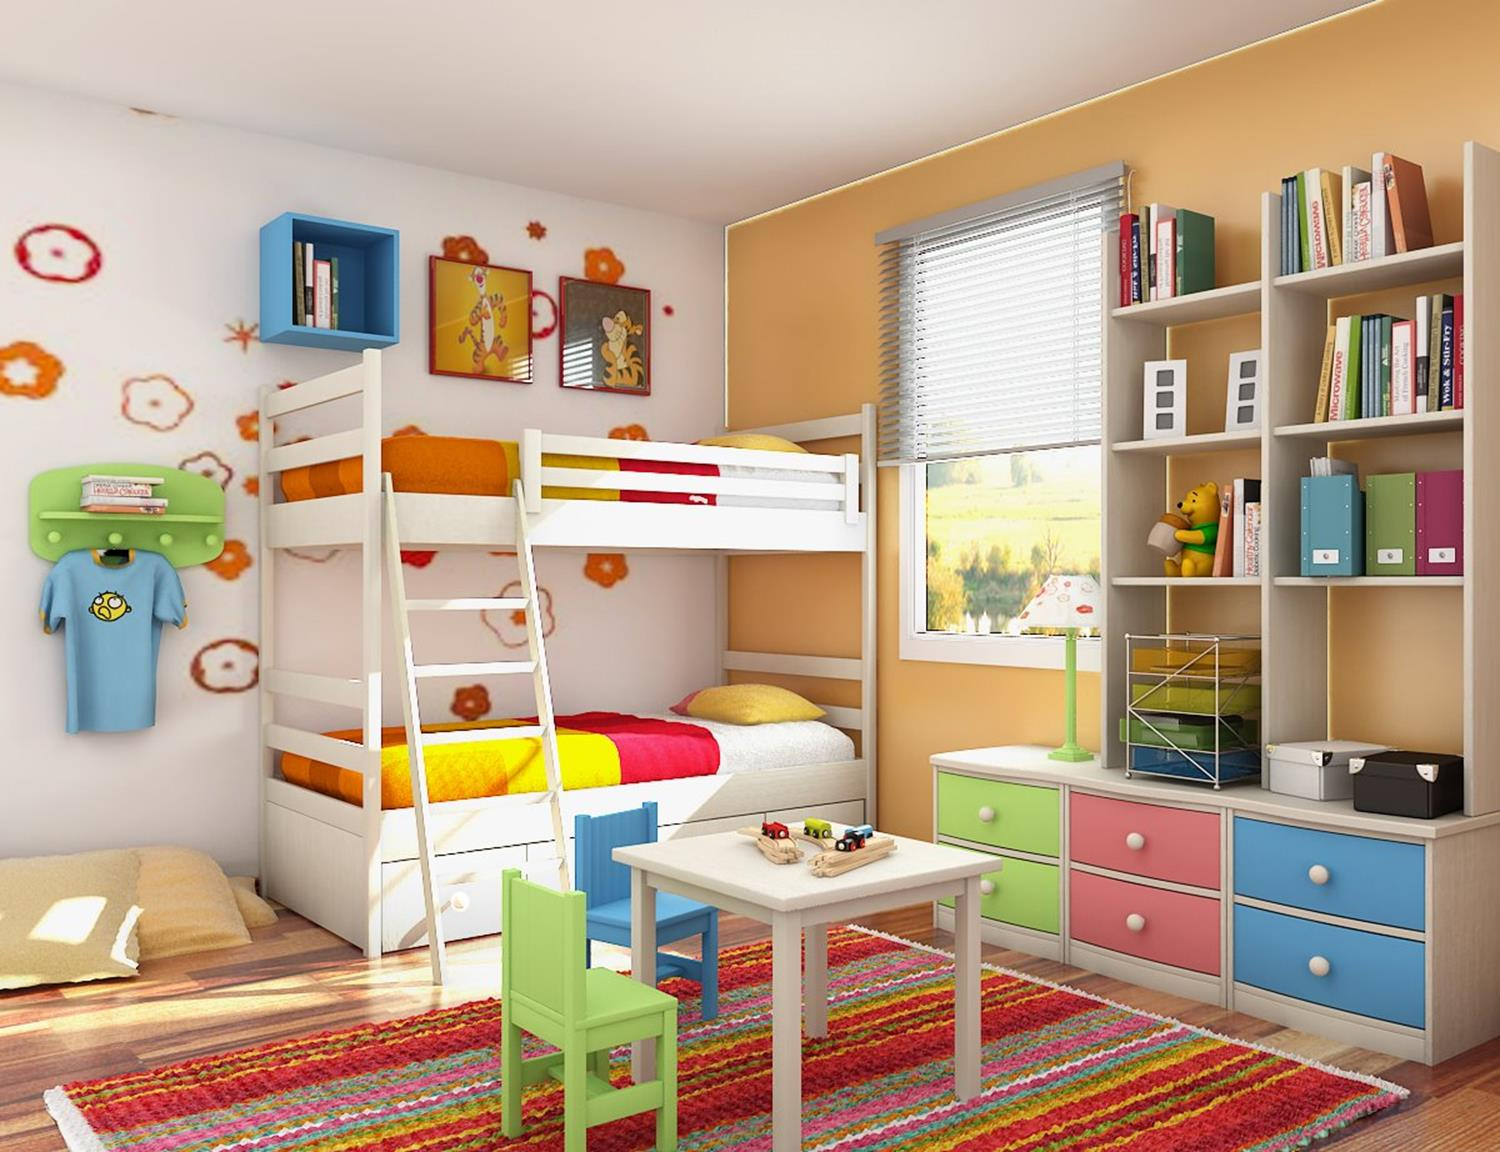 Color Full Kids Room Decorating Ideas On A Budget 18